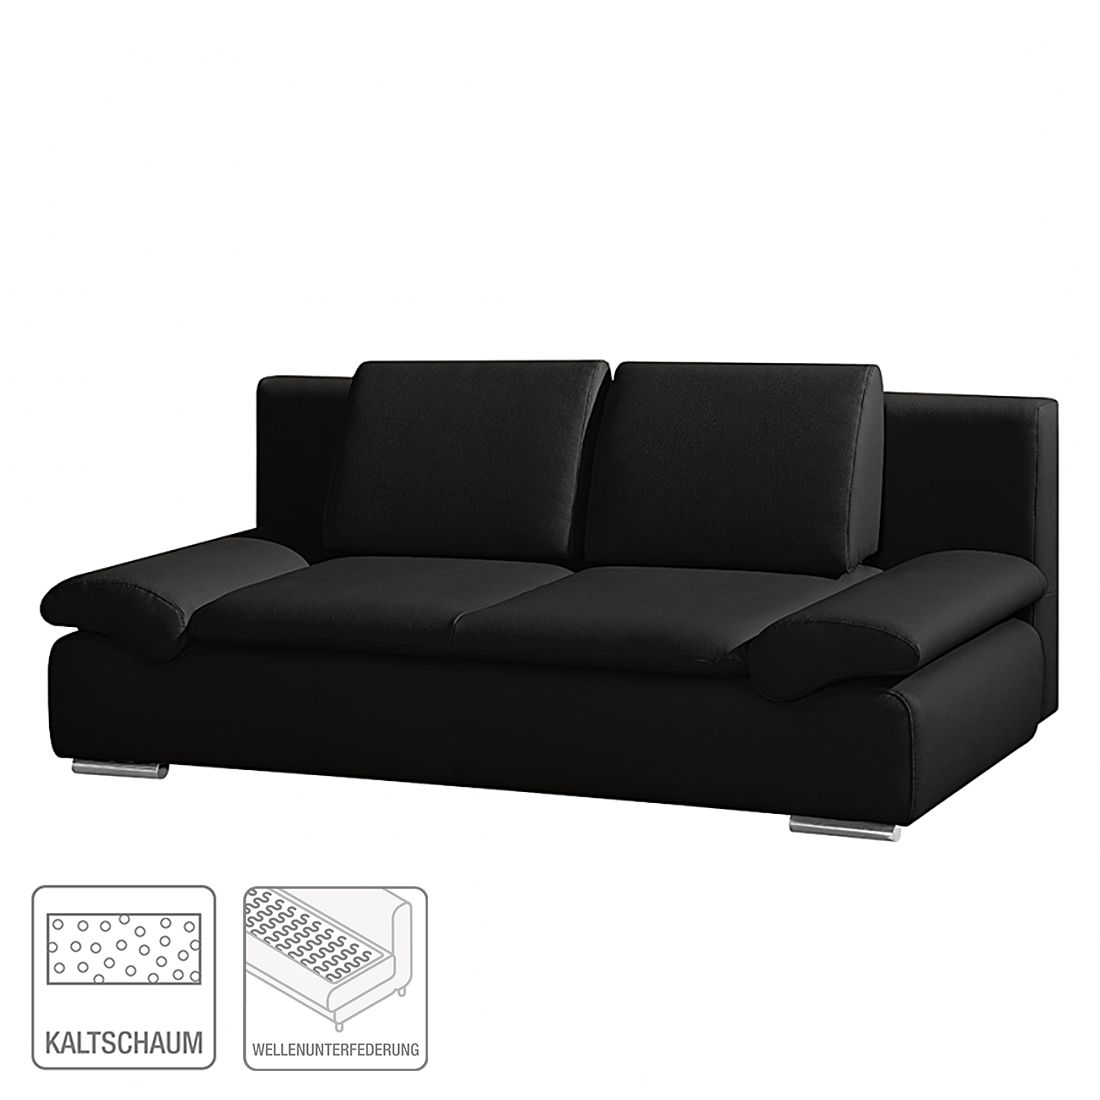 schlafsofa norris kunstleder schwarz modoform g nstig. Black Bedroom Furniture Sets. Home Design Ideas